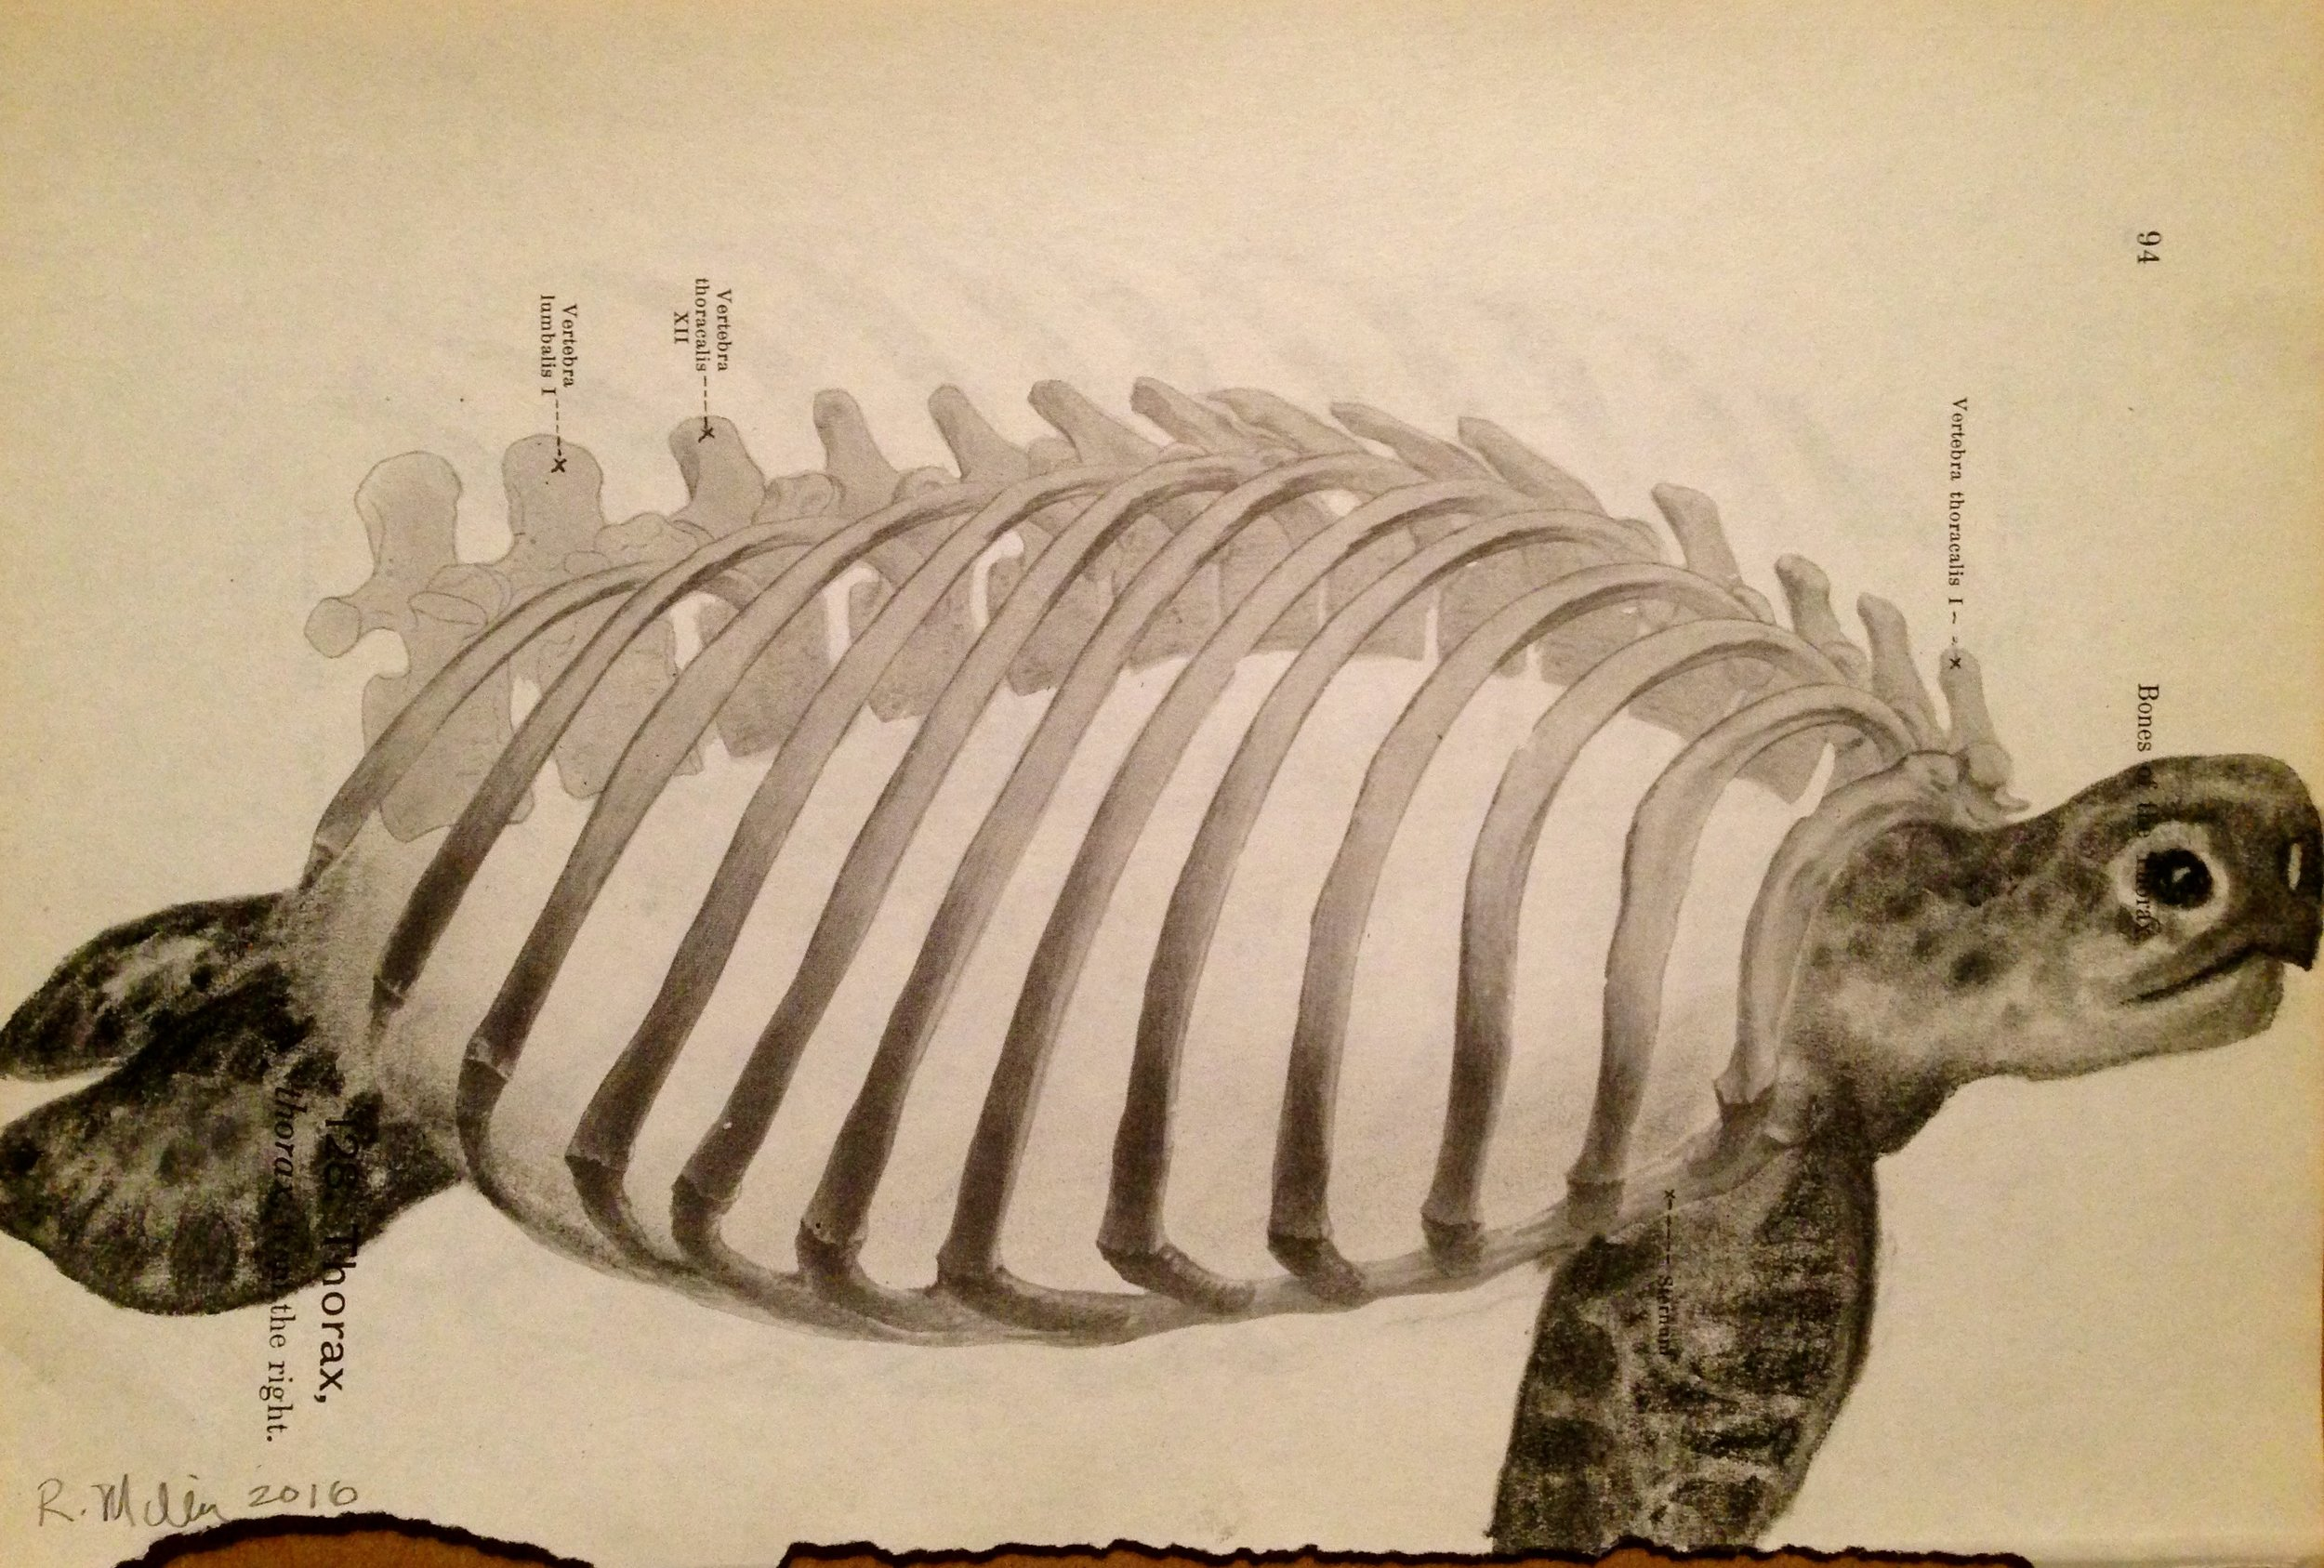 Thorax Turtle, 2016   Charcoal on antique medical paper